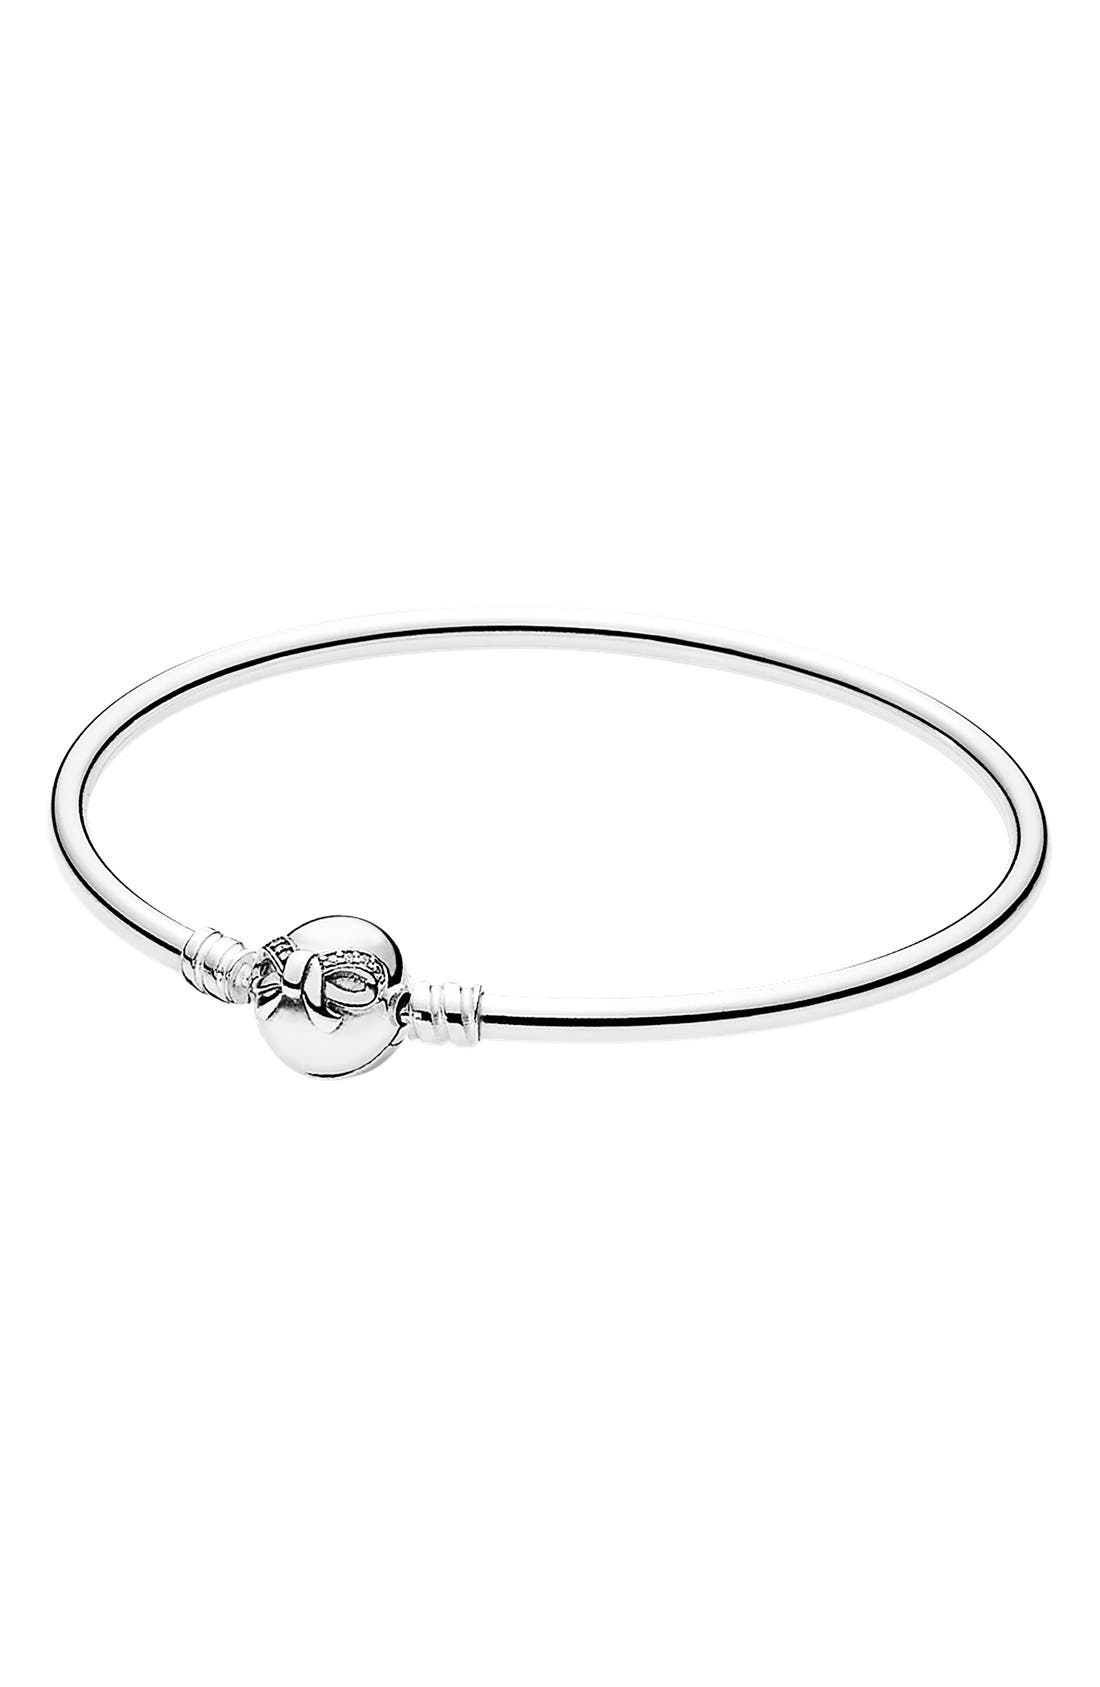 'Dainty Bow' Bangle,                             Main thumbnail 1, color,                             040